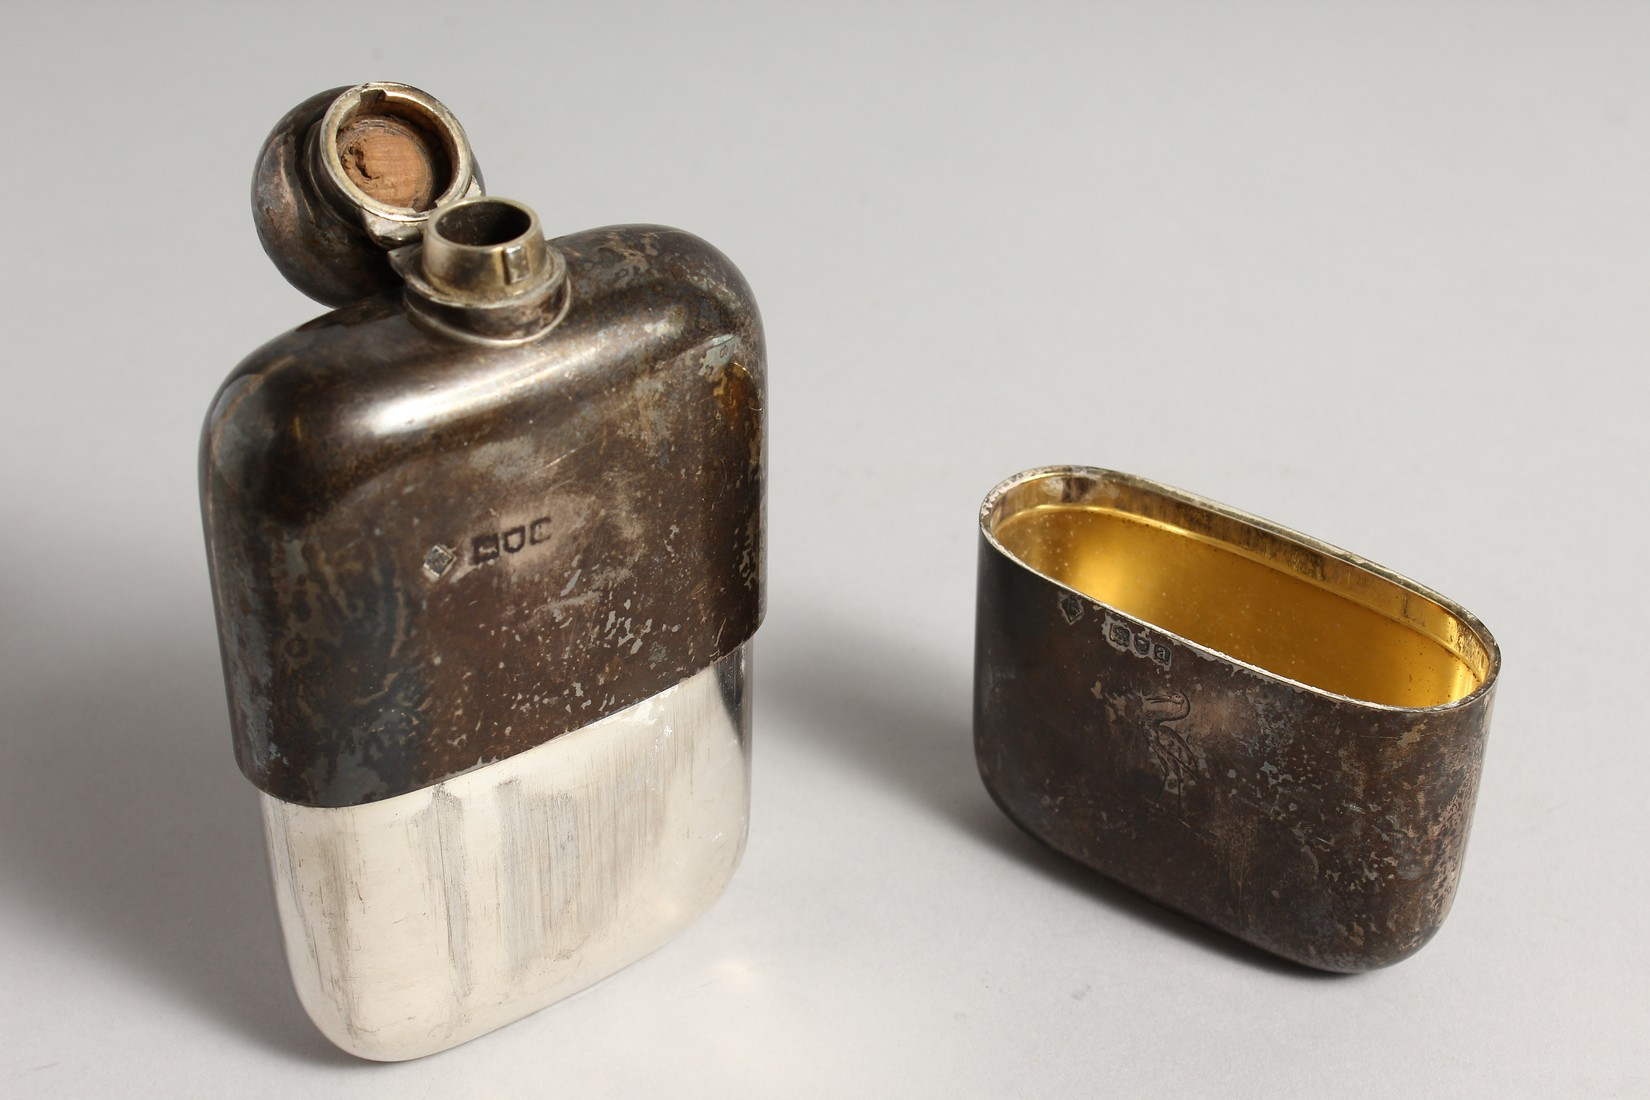 A HEAVY VICTORIAN SILVER WHISKY FLASK London 1896, weighs 9ozs. - Image 4 of 6